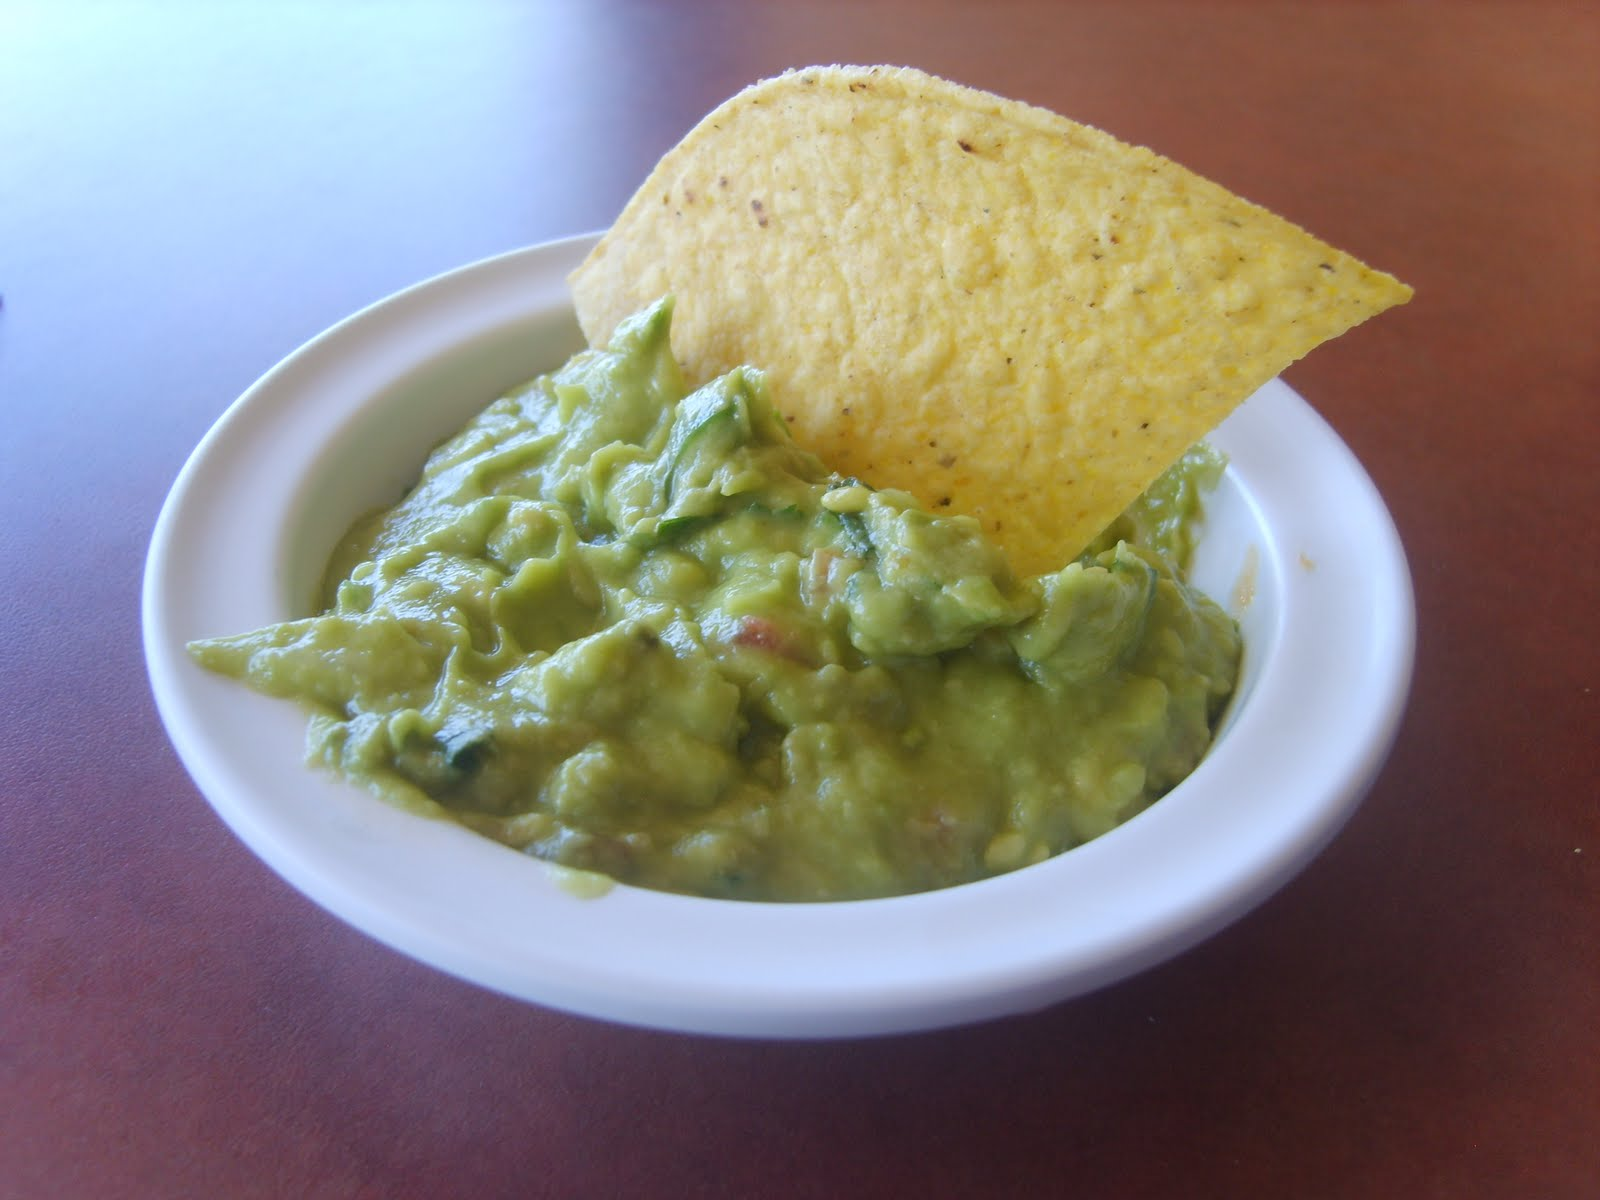 Guacamole and a chip. One chip.